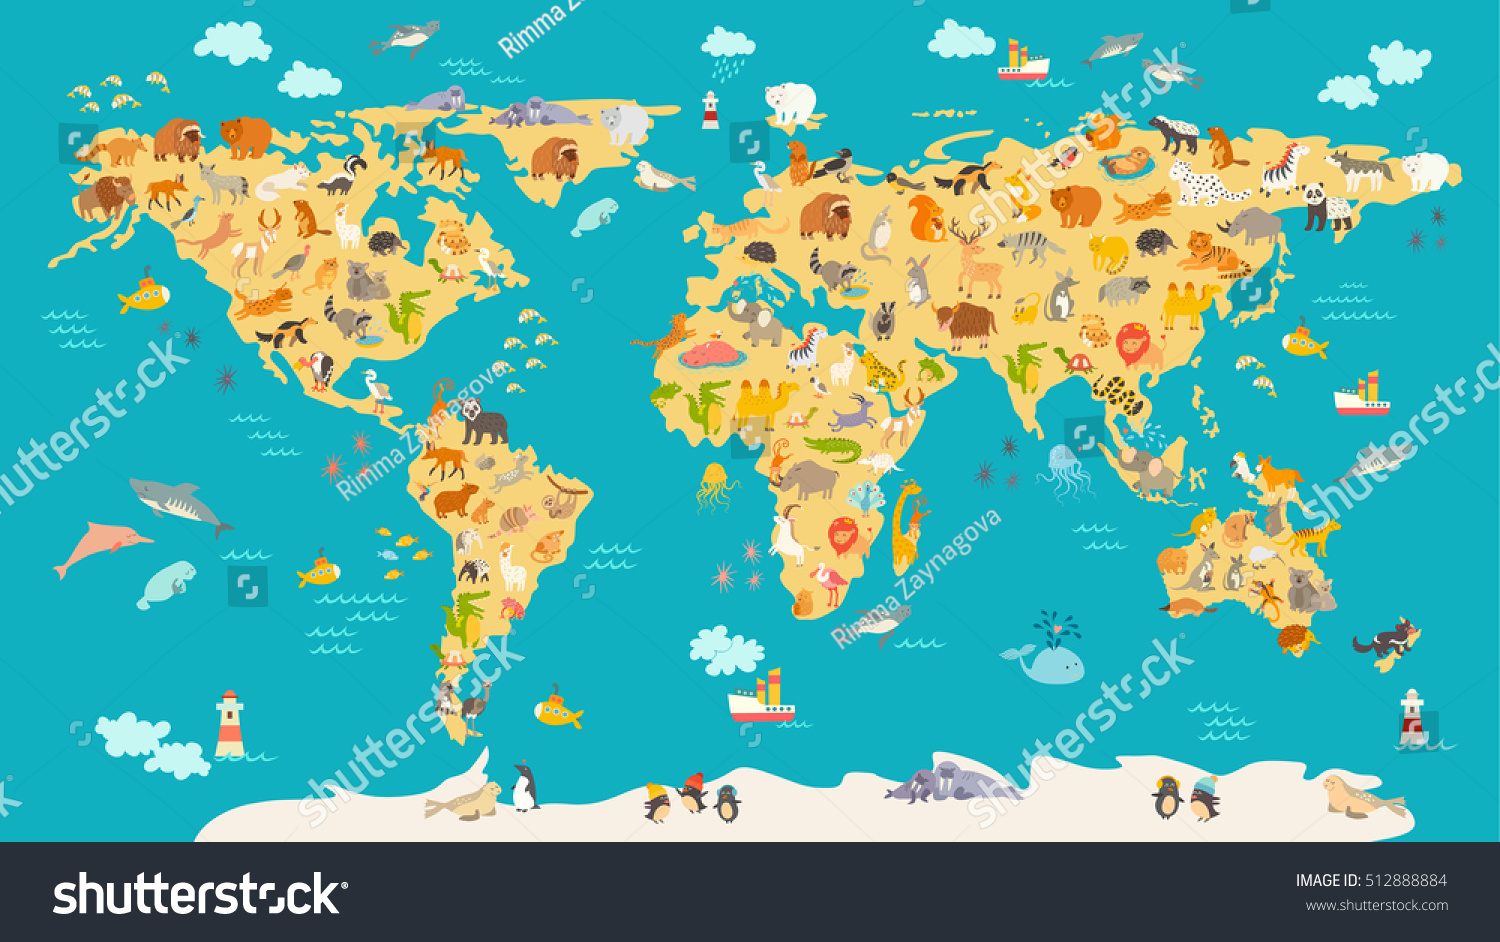 Royalty free animal map for kid world vector poster 512888884 animal map for kid world vector poster for children cute illustrated preschool cartoon gumiabroncs Image collections